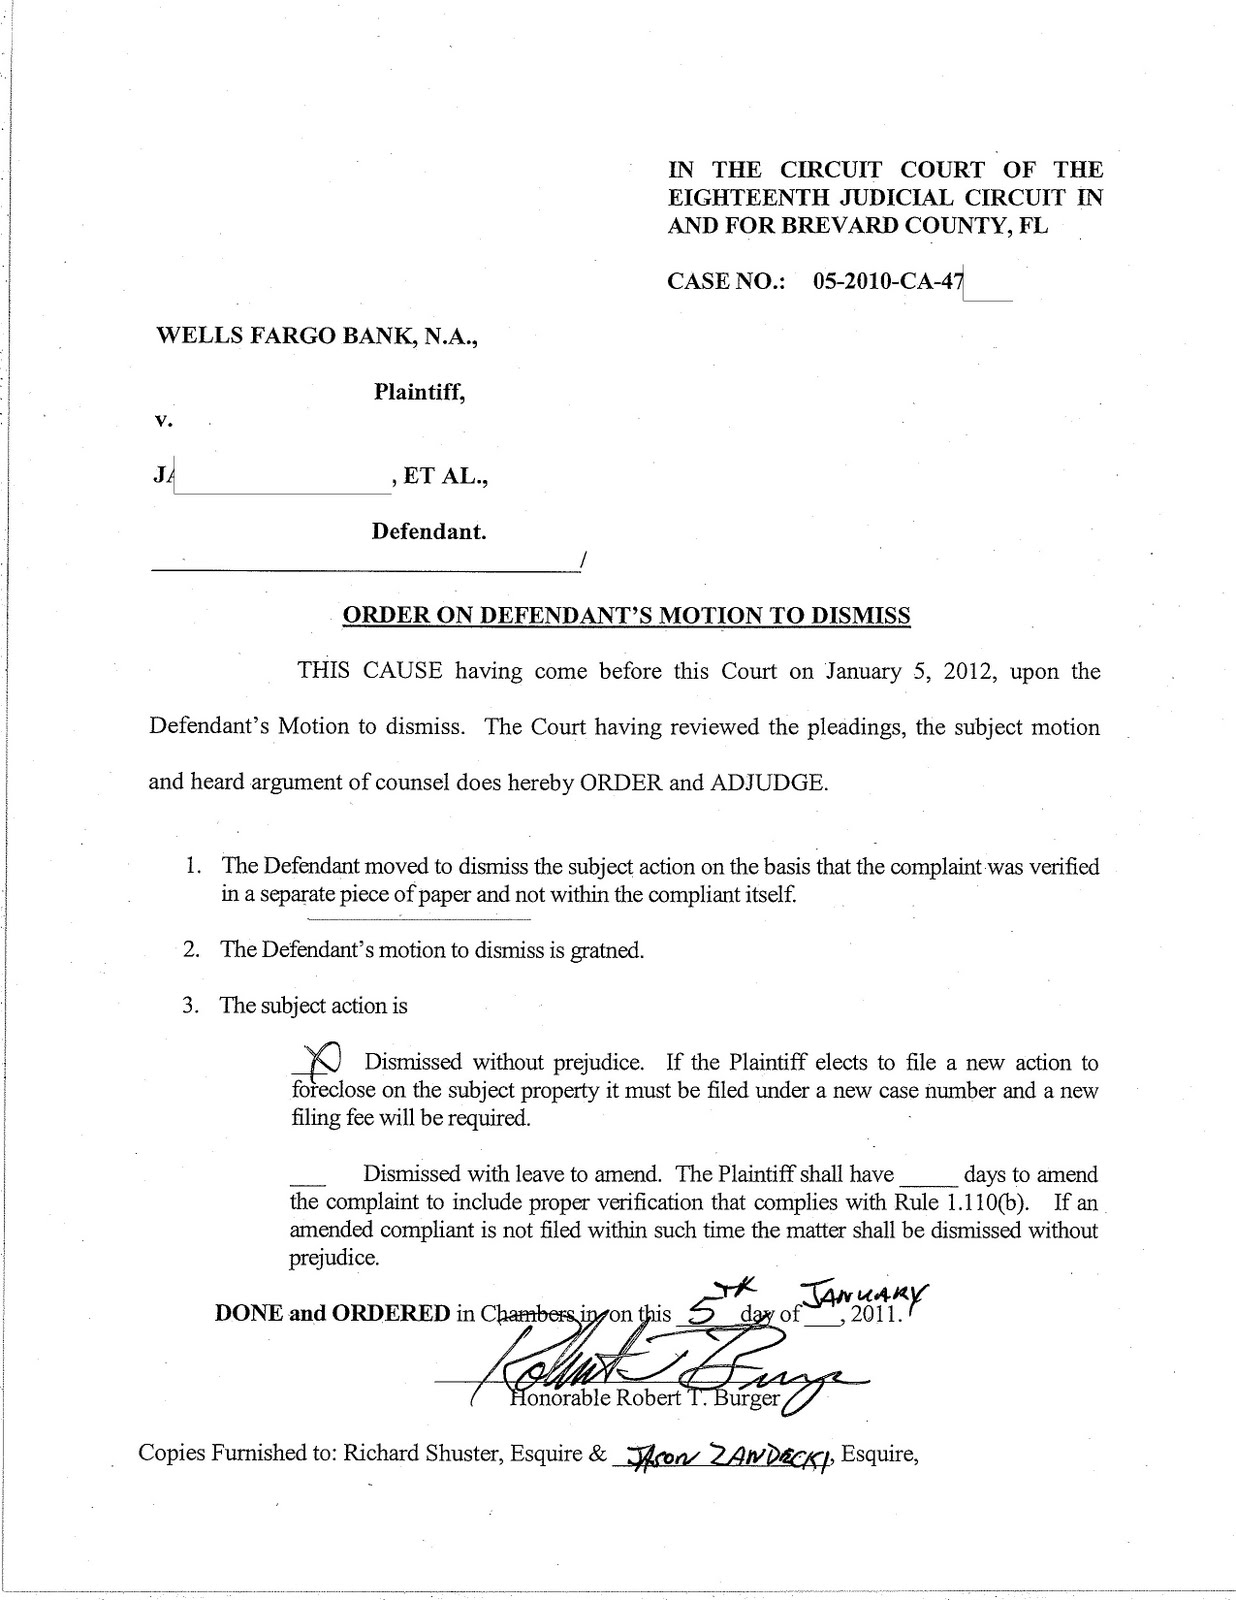 Florida foreclosure defense blog 2012 for Motion to dismiss with prejudice template